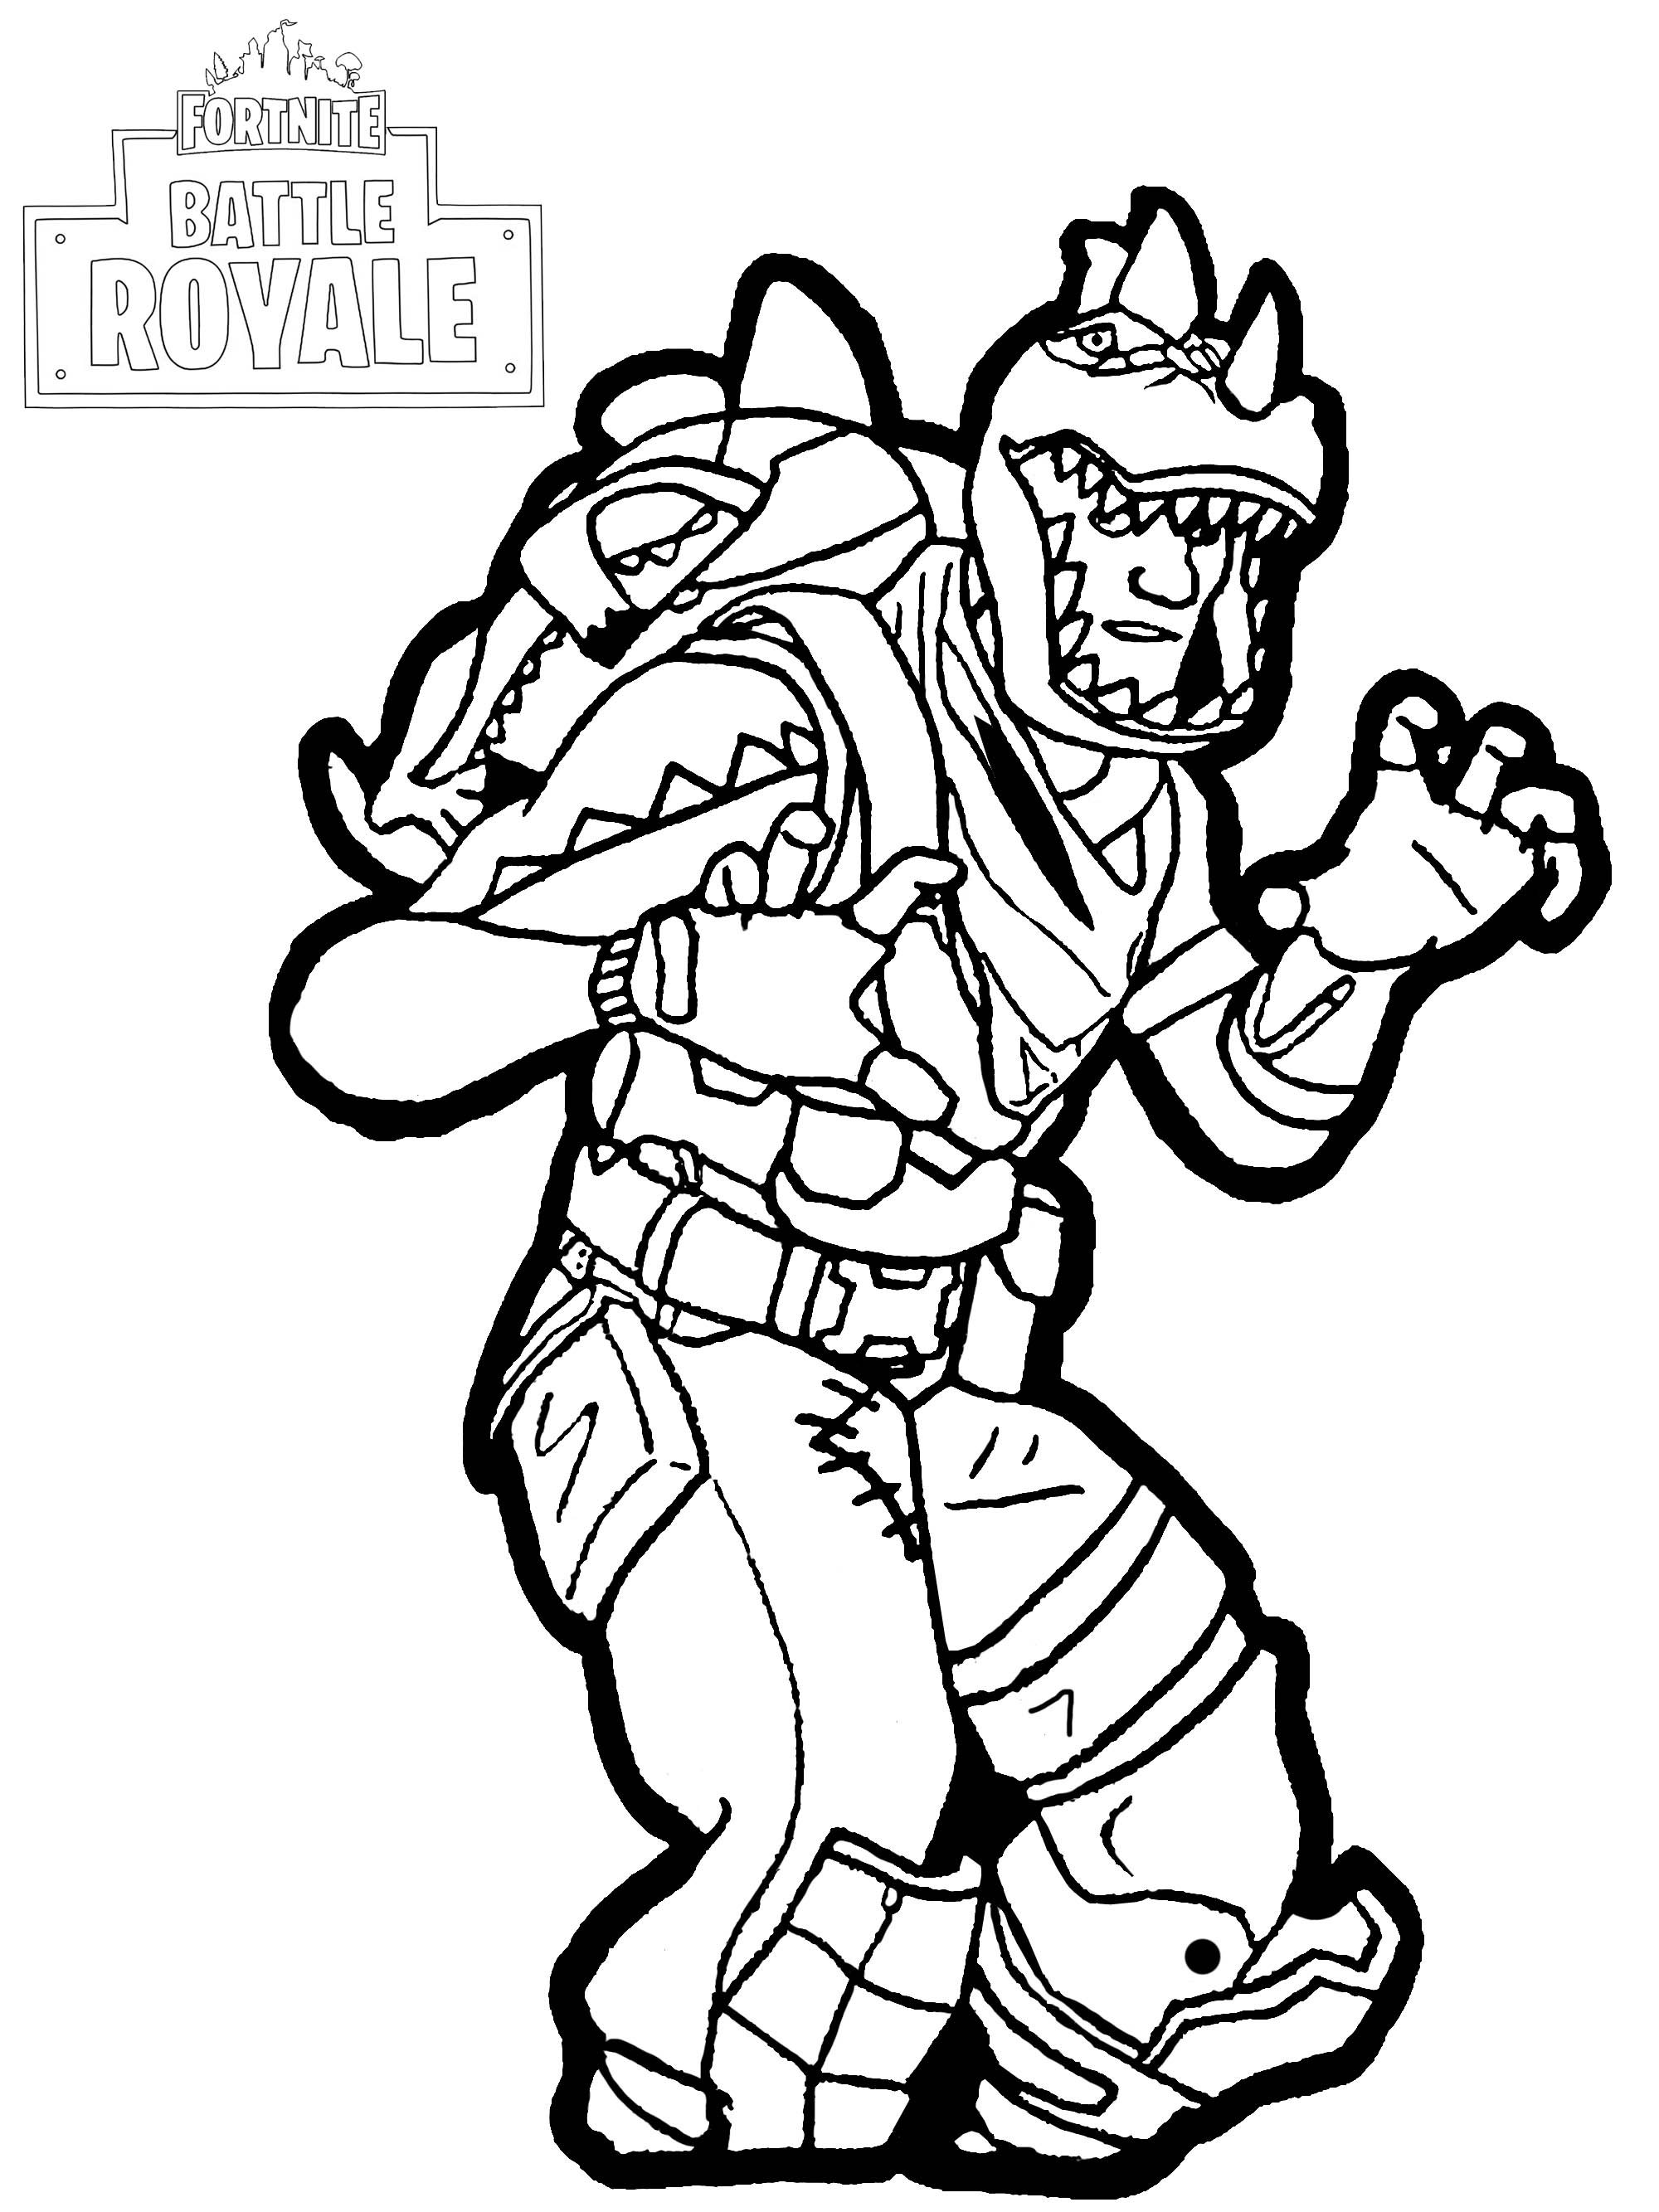 Rex In Fortine Coloring Play Free Coloring Game Online